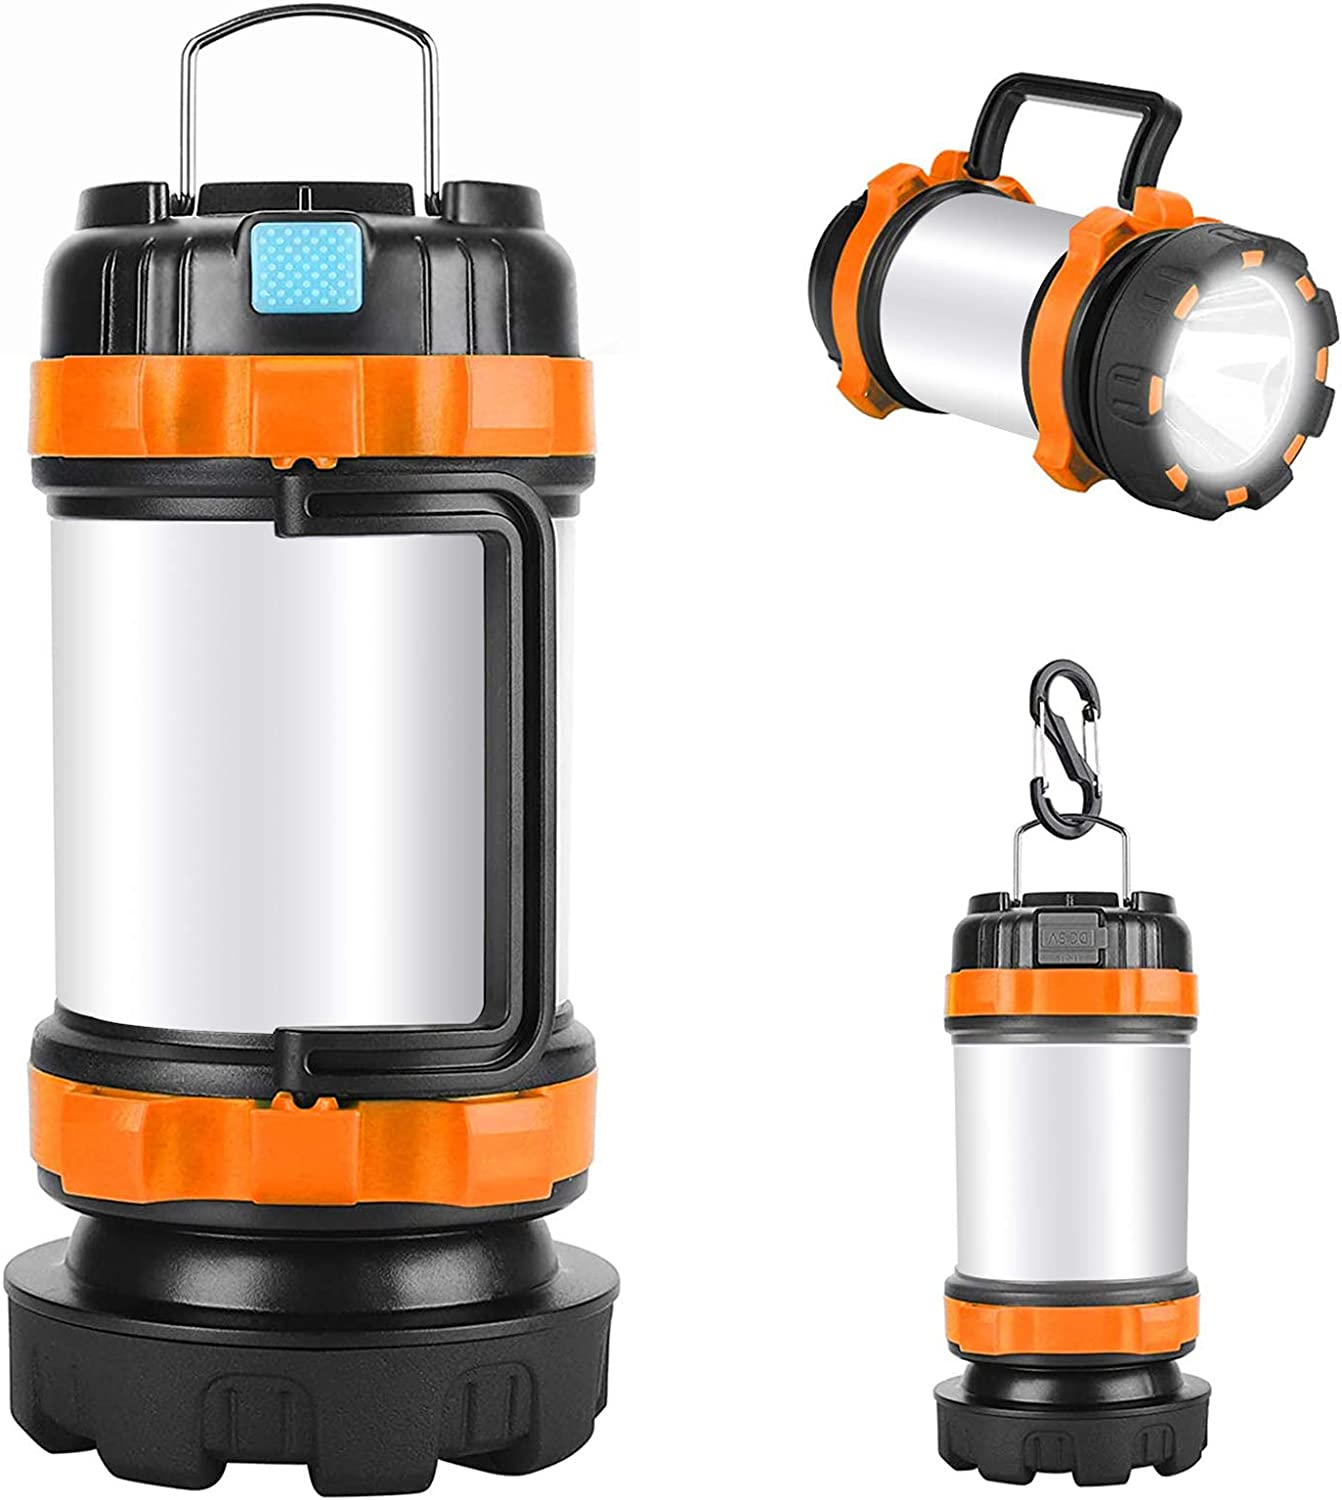 Led Lantern Camping 2 Pack USB Charging Cable Included Outdoor Recreations Alpswolf Camping Flashlight 4000mAh Power Bank,6 Modes IPX4 Waterproof Hiking Camping Lantern Rechargeable